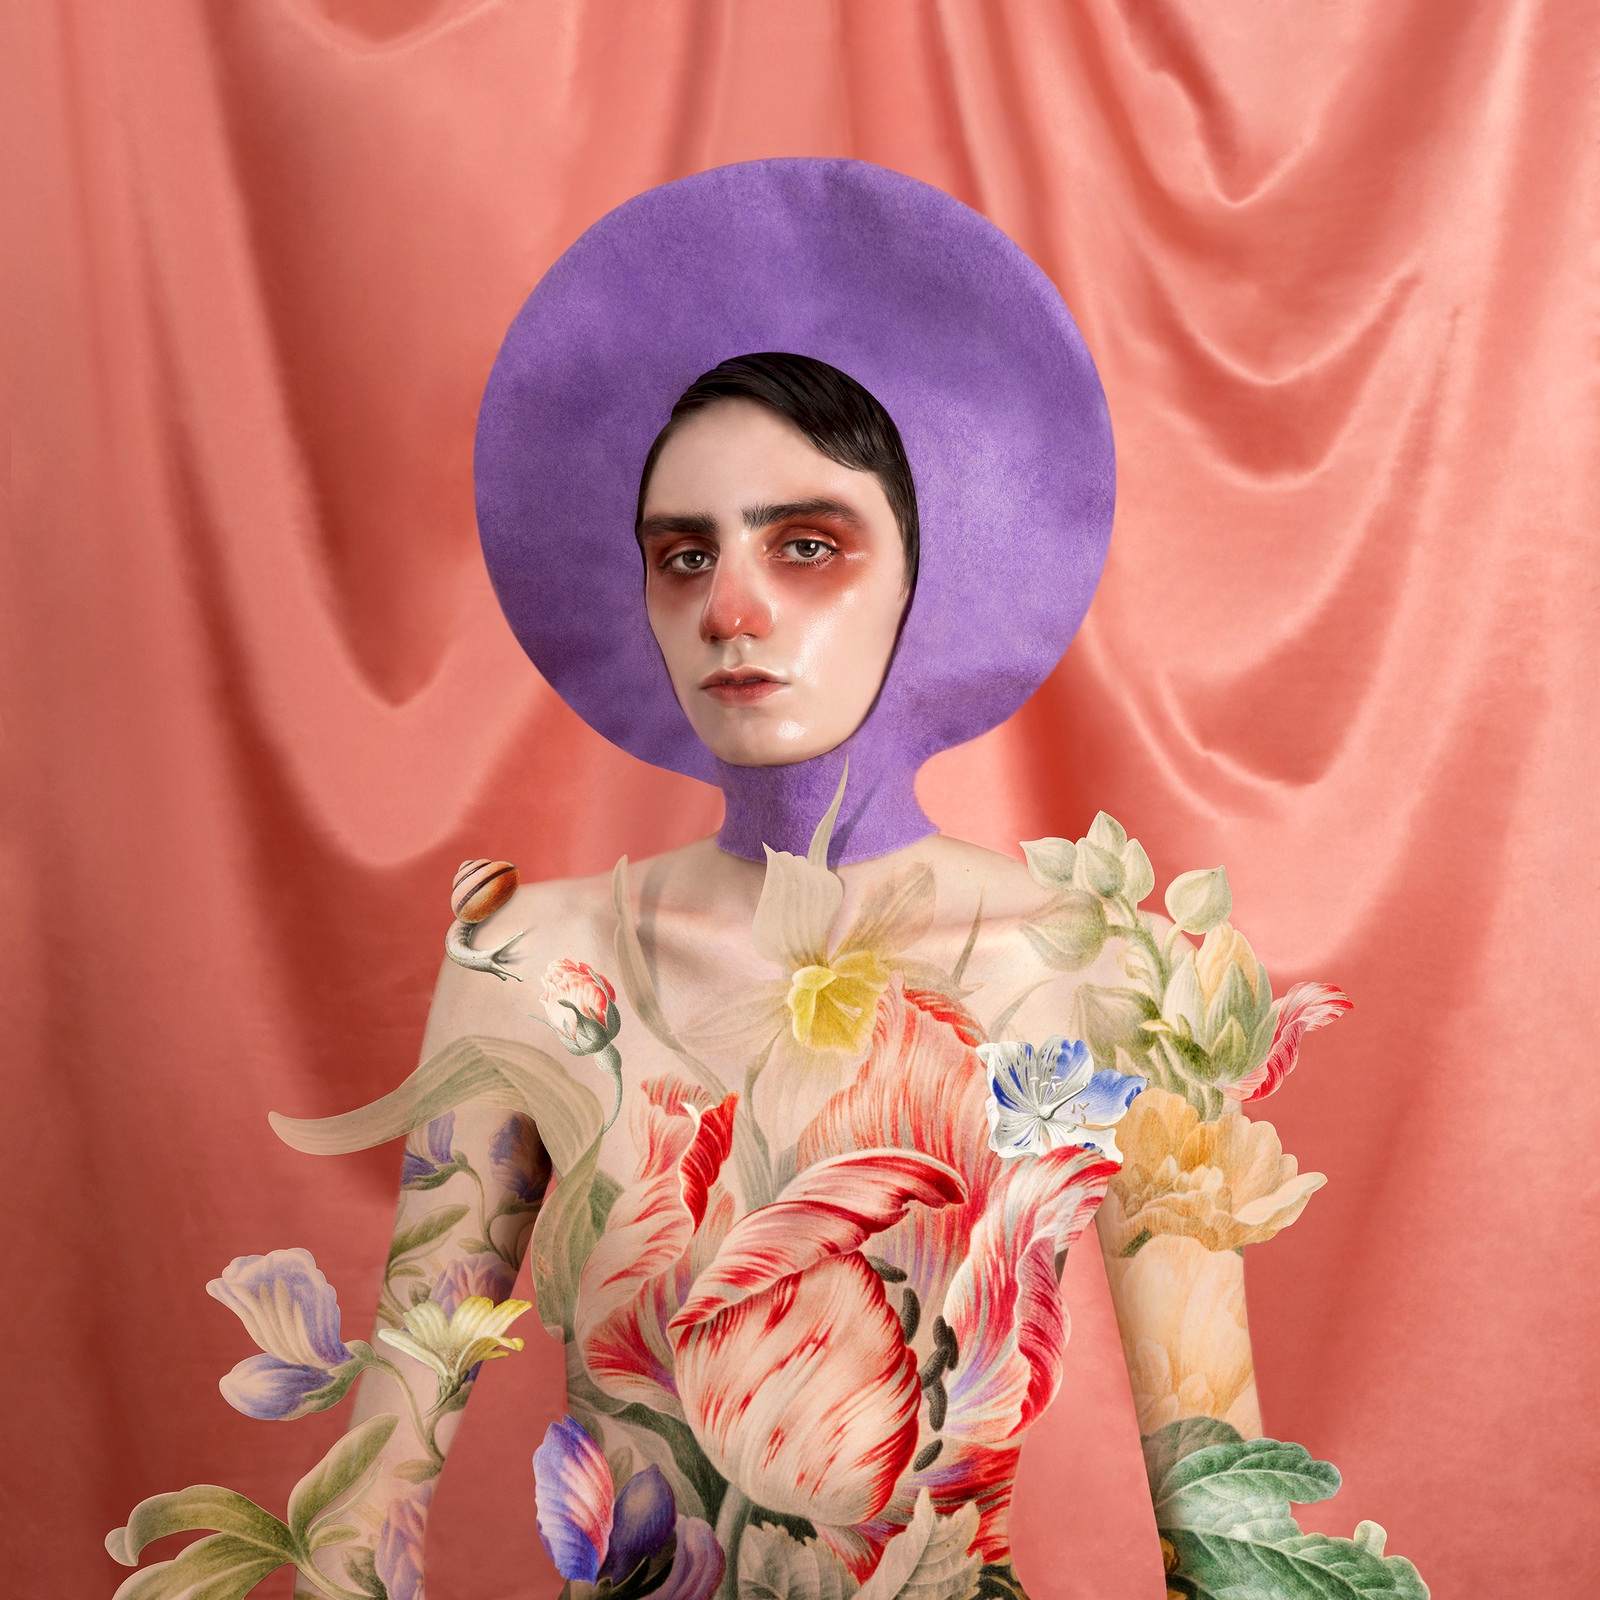 BLOOM Otherness portraits serie - andres_marti | ello